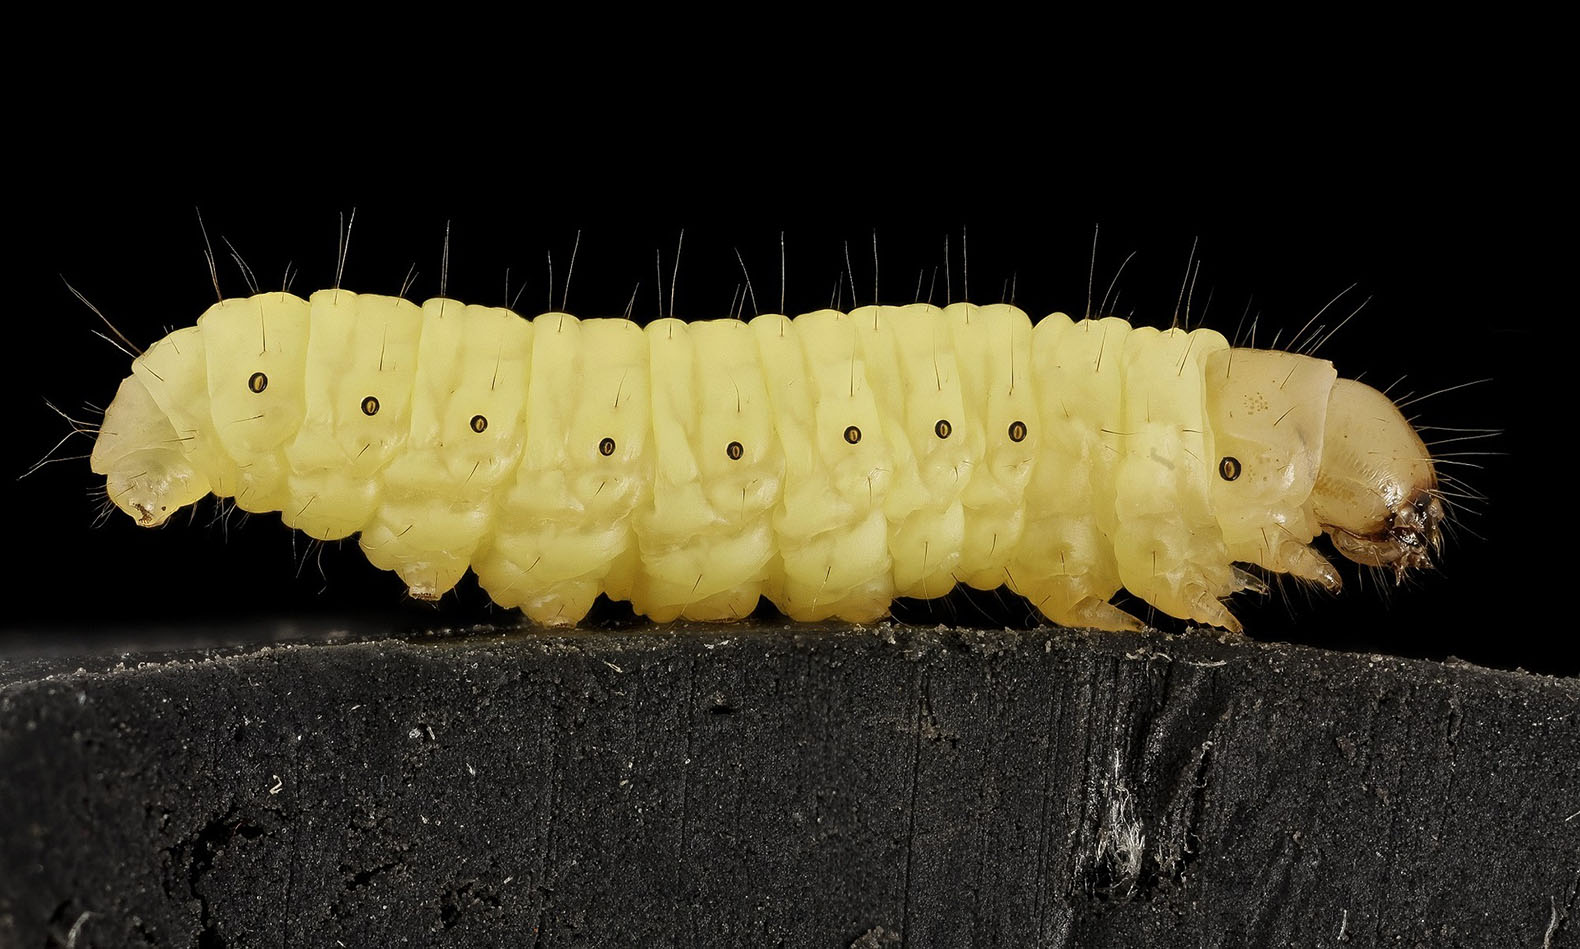 Plastic-eating caterpillar could revolutionize waste treatment